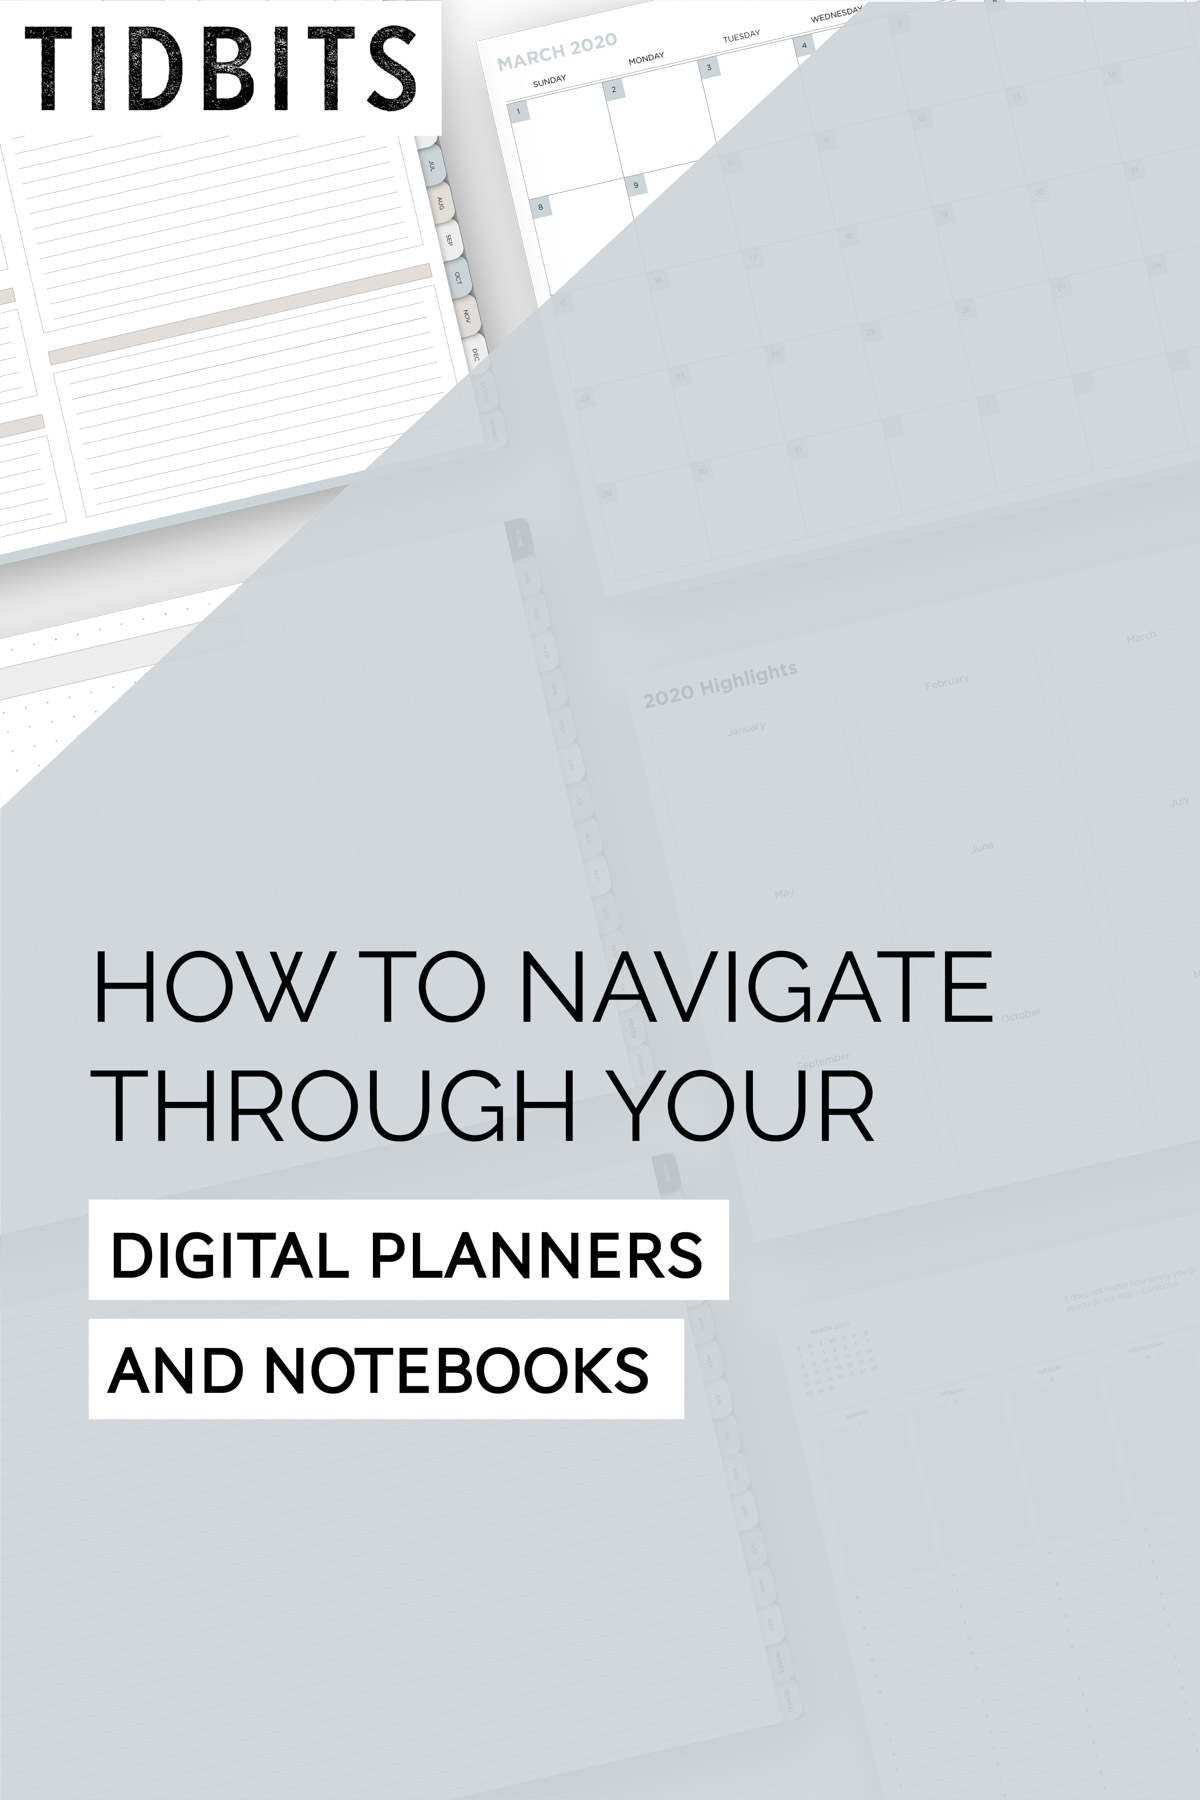 How to navigate through your digital planner and notebooks